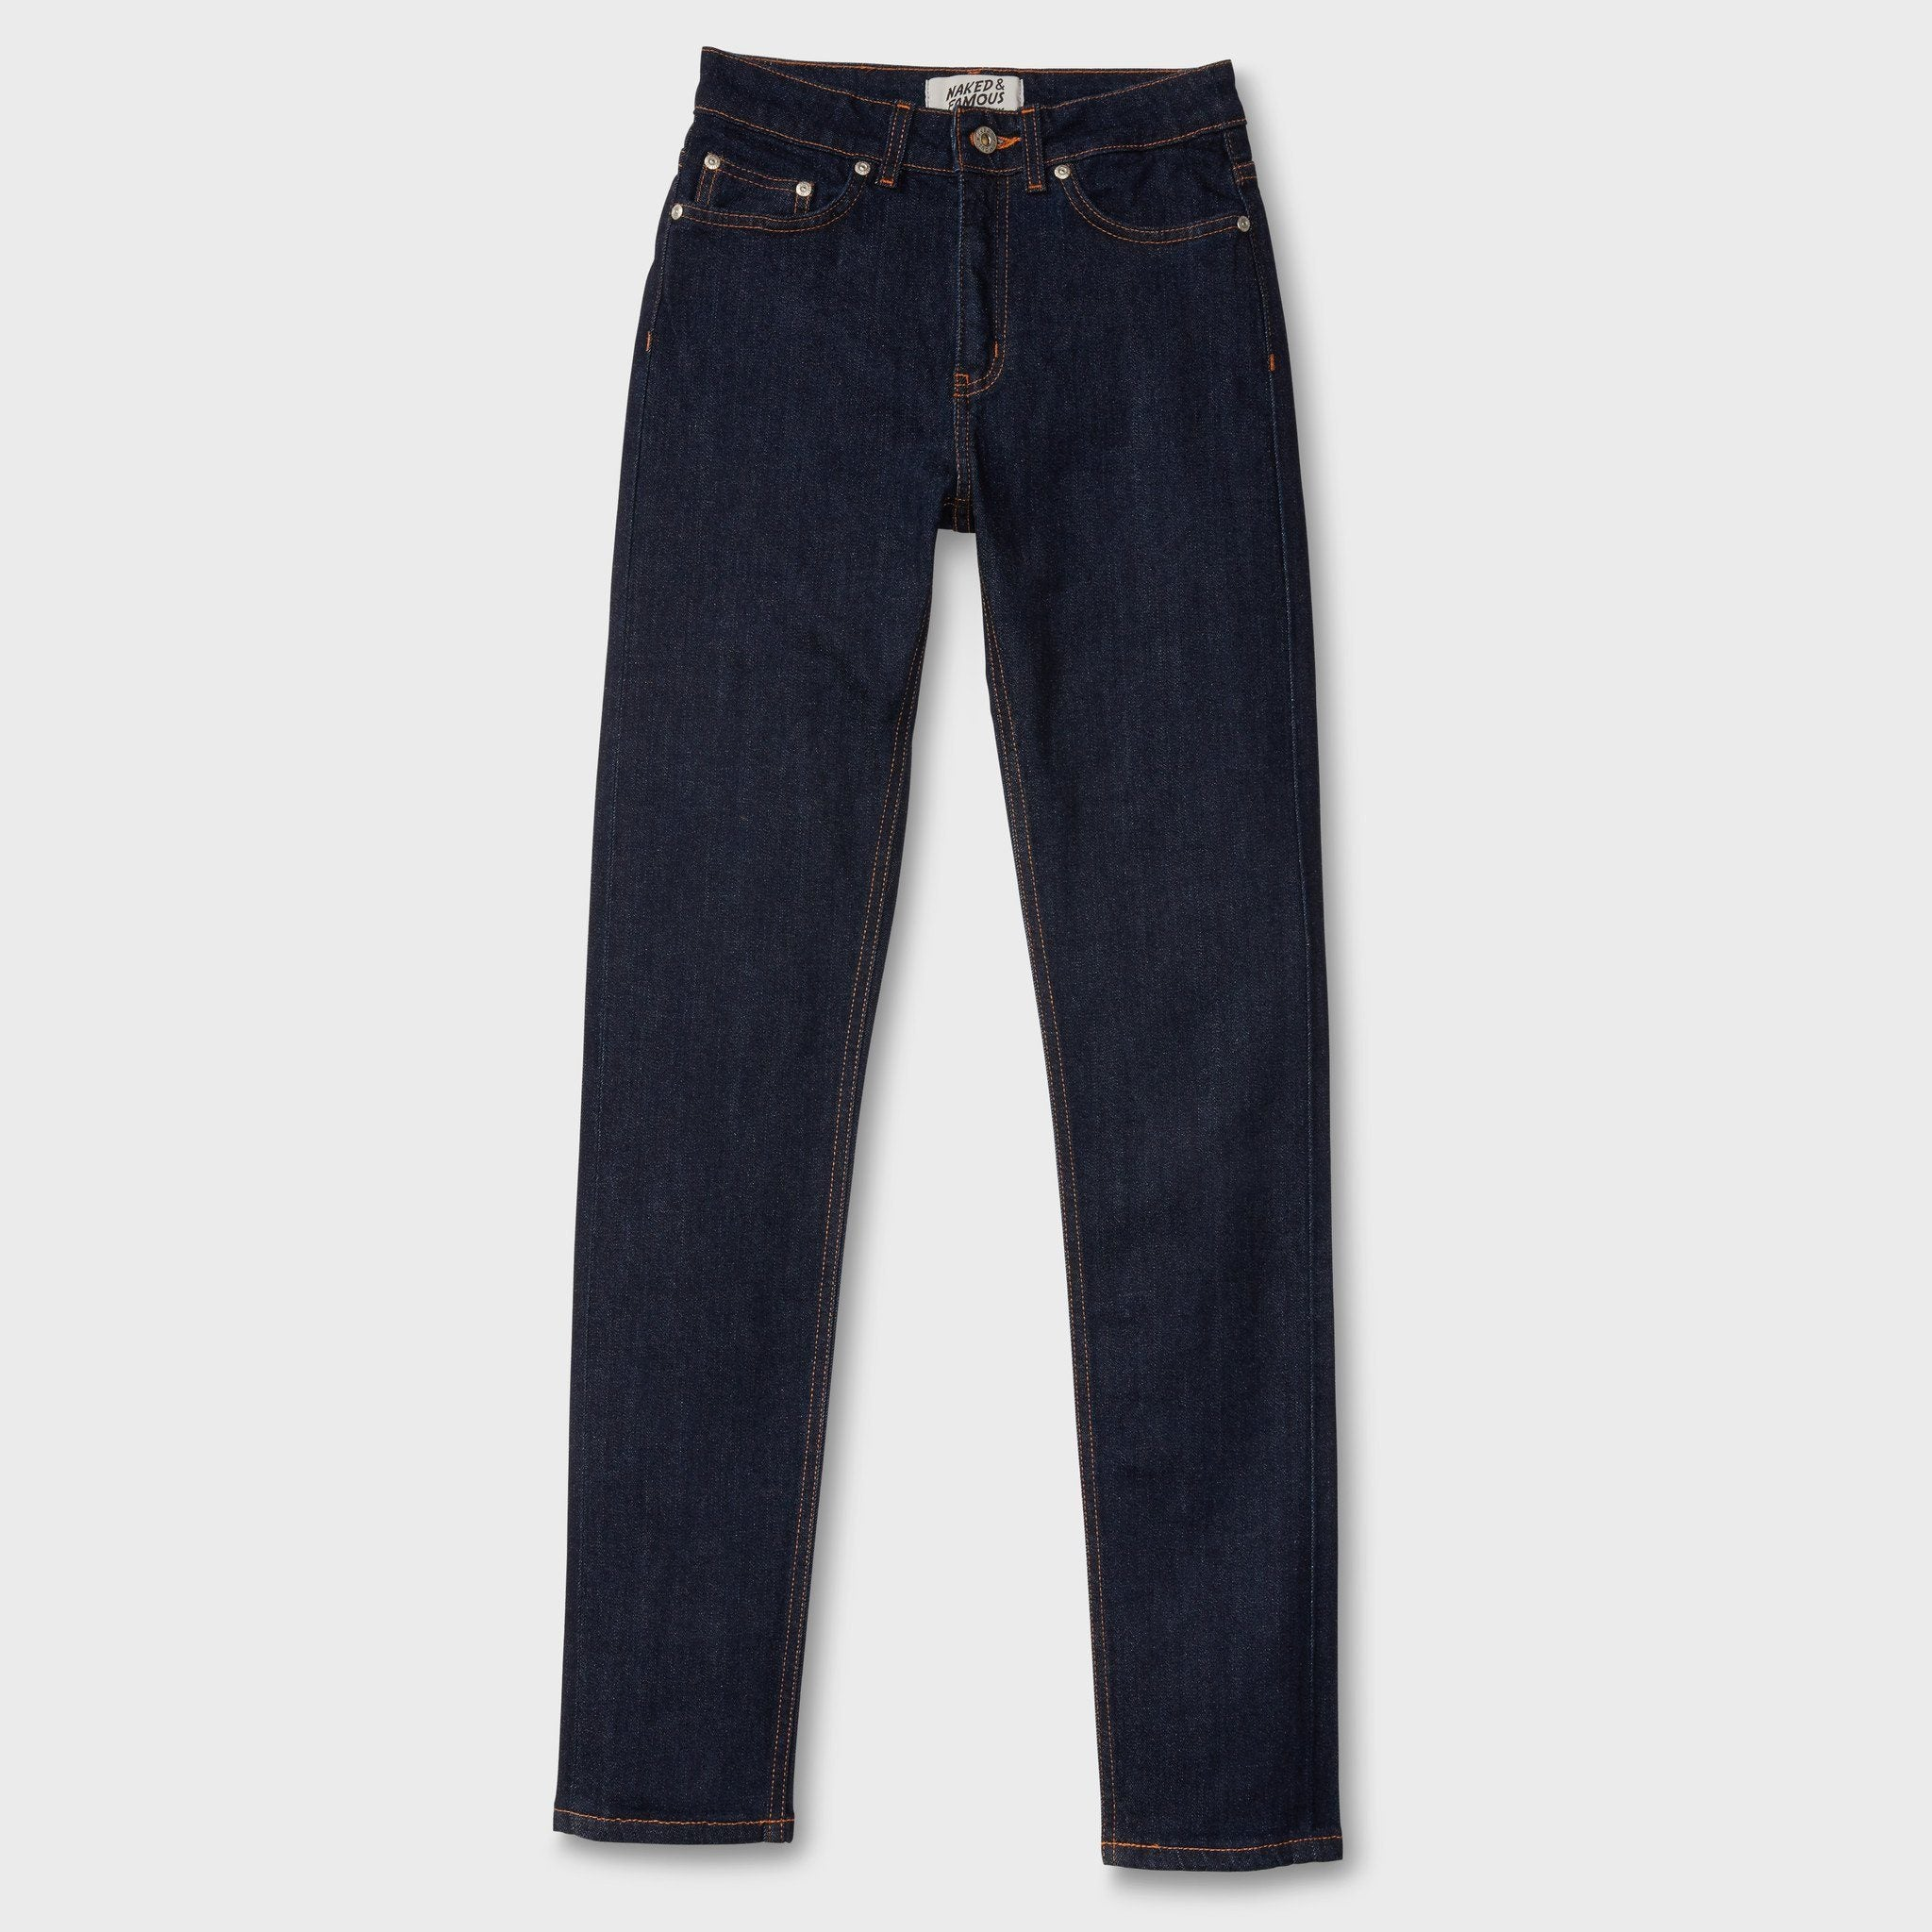 Naked & Famous Women's 11oz Stretch Selvedge High Skinny Indigo